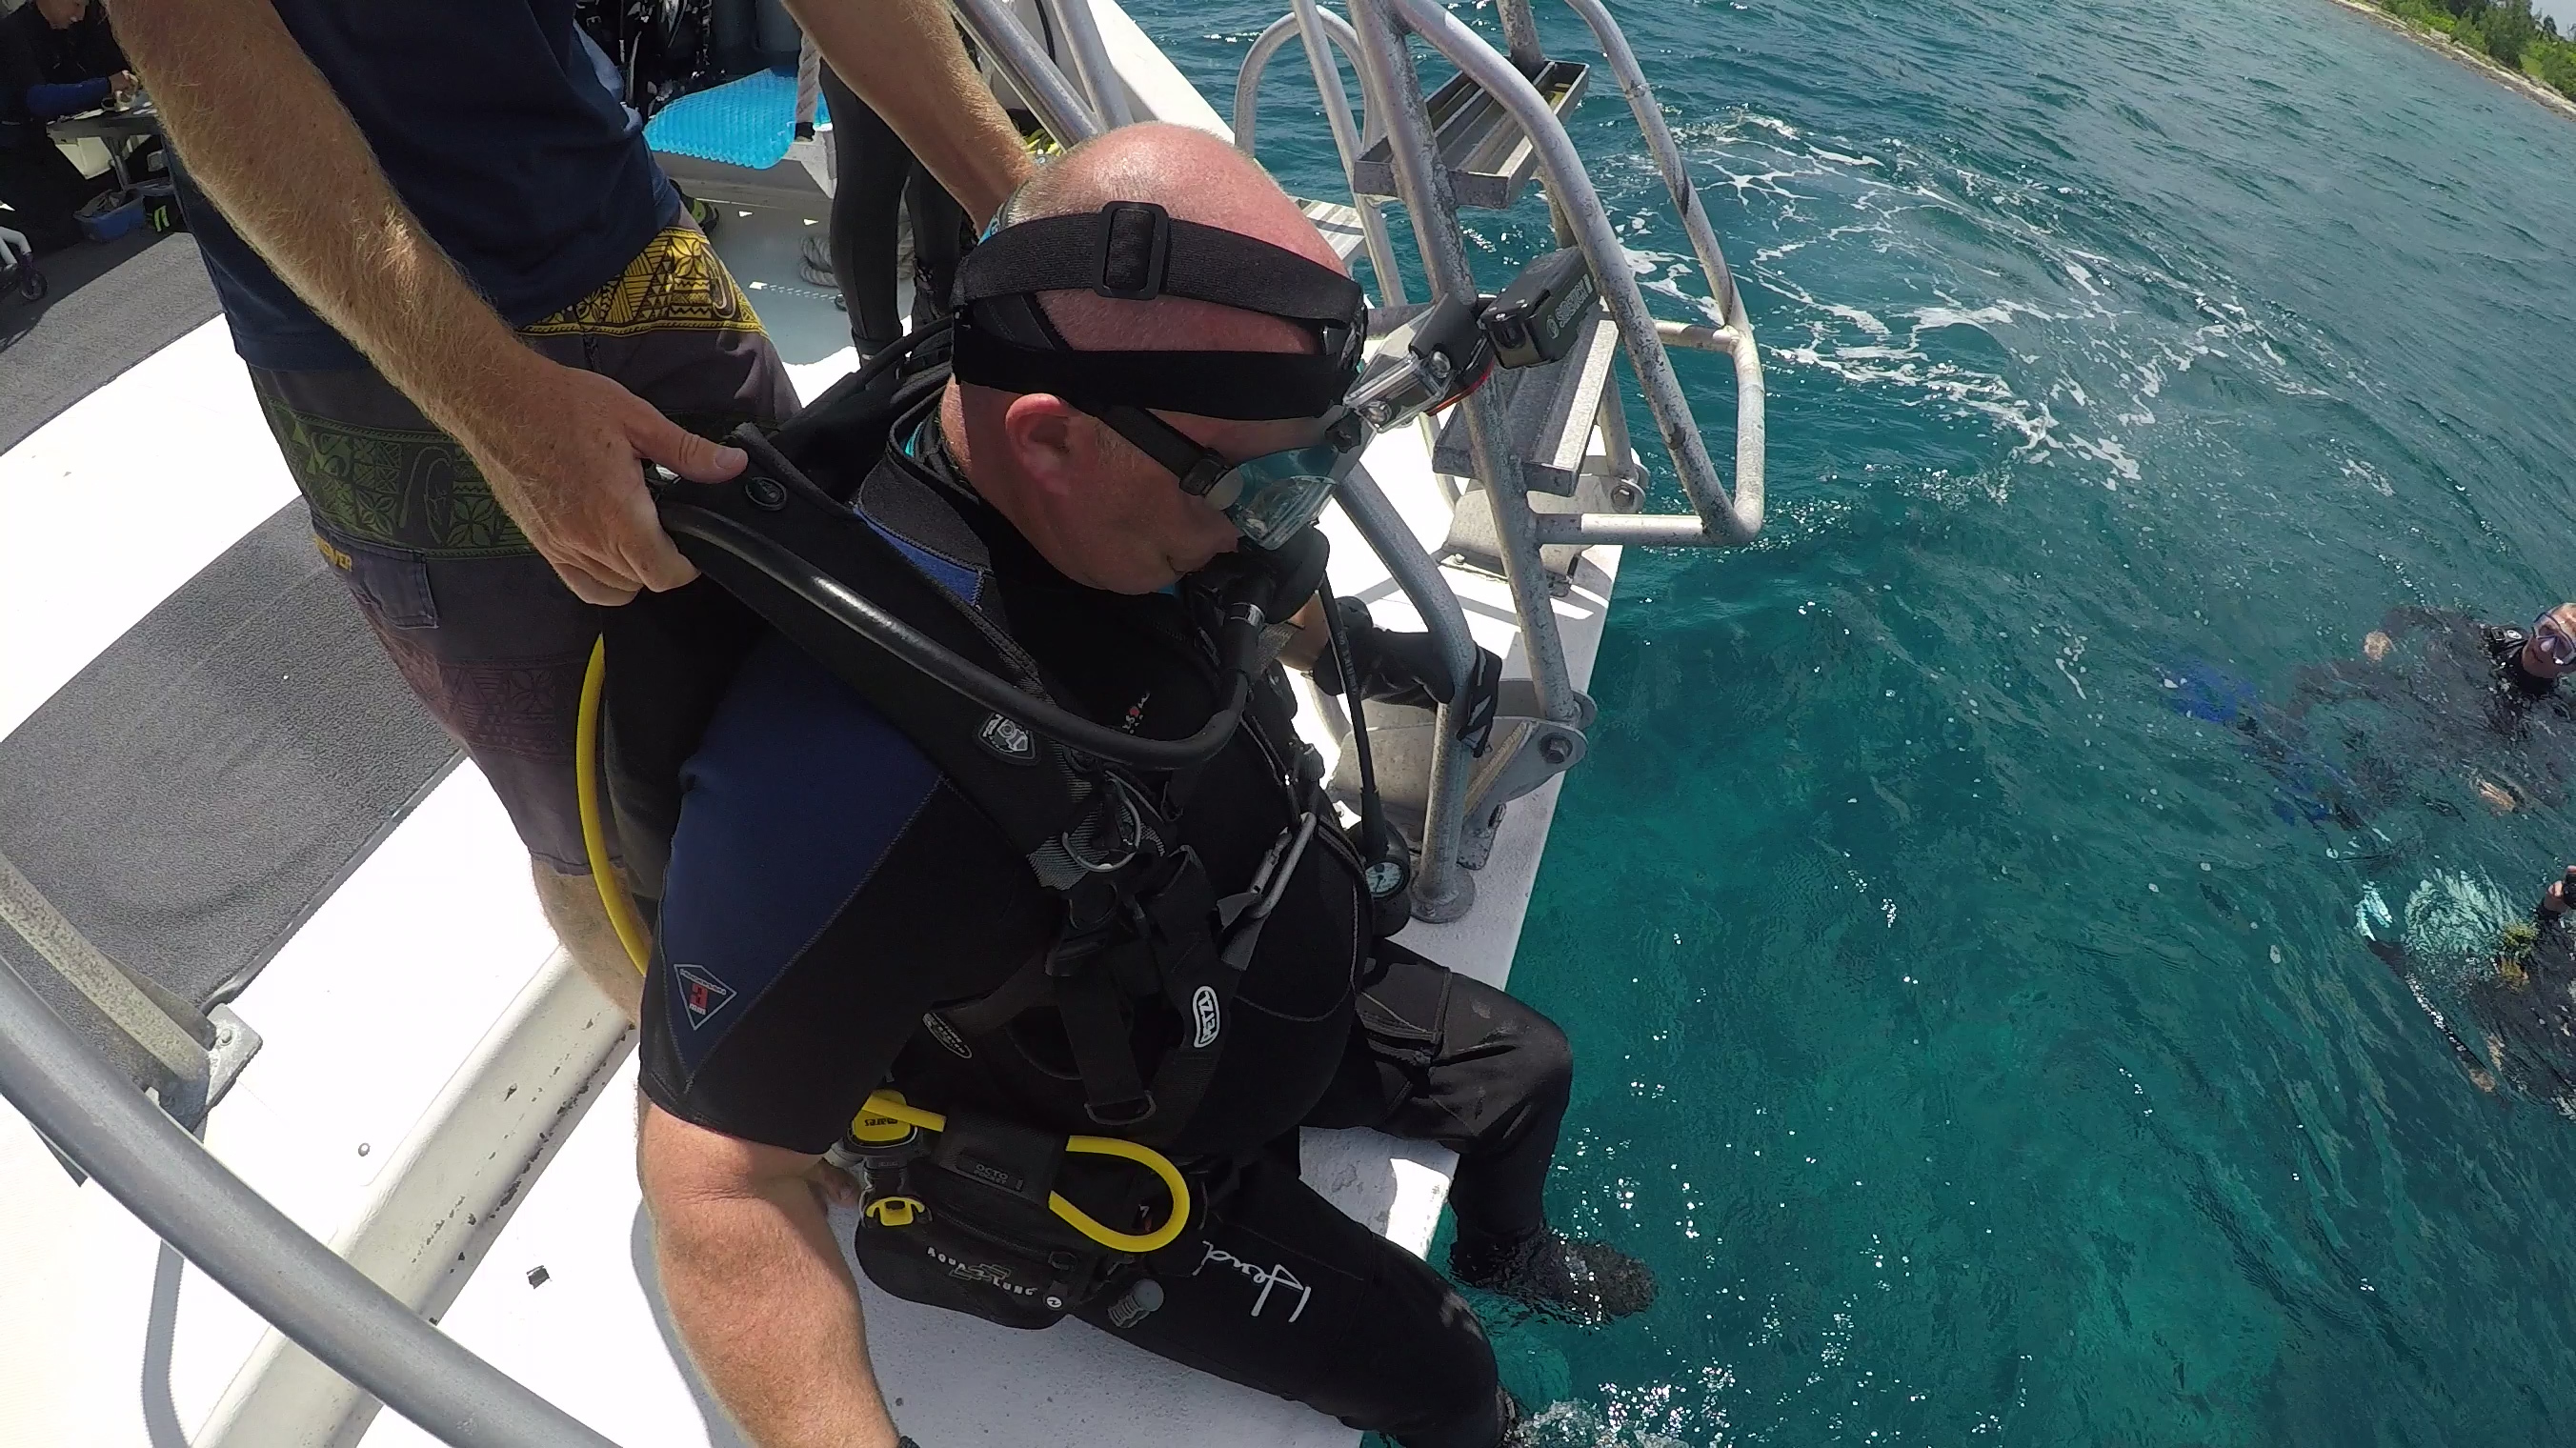 Corey Fairbanks in Cayman Brac for a week of adaptive scuba diving with Craig Hospital and A-1 Scuba.